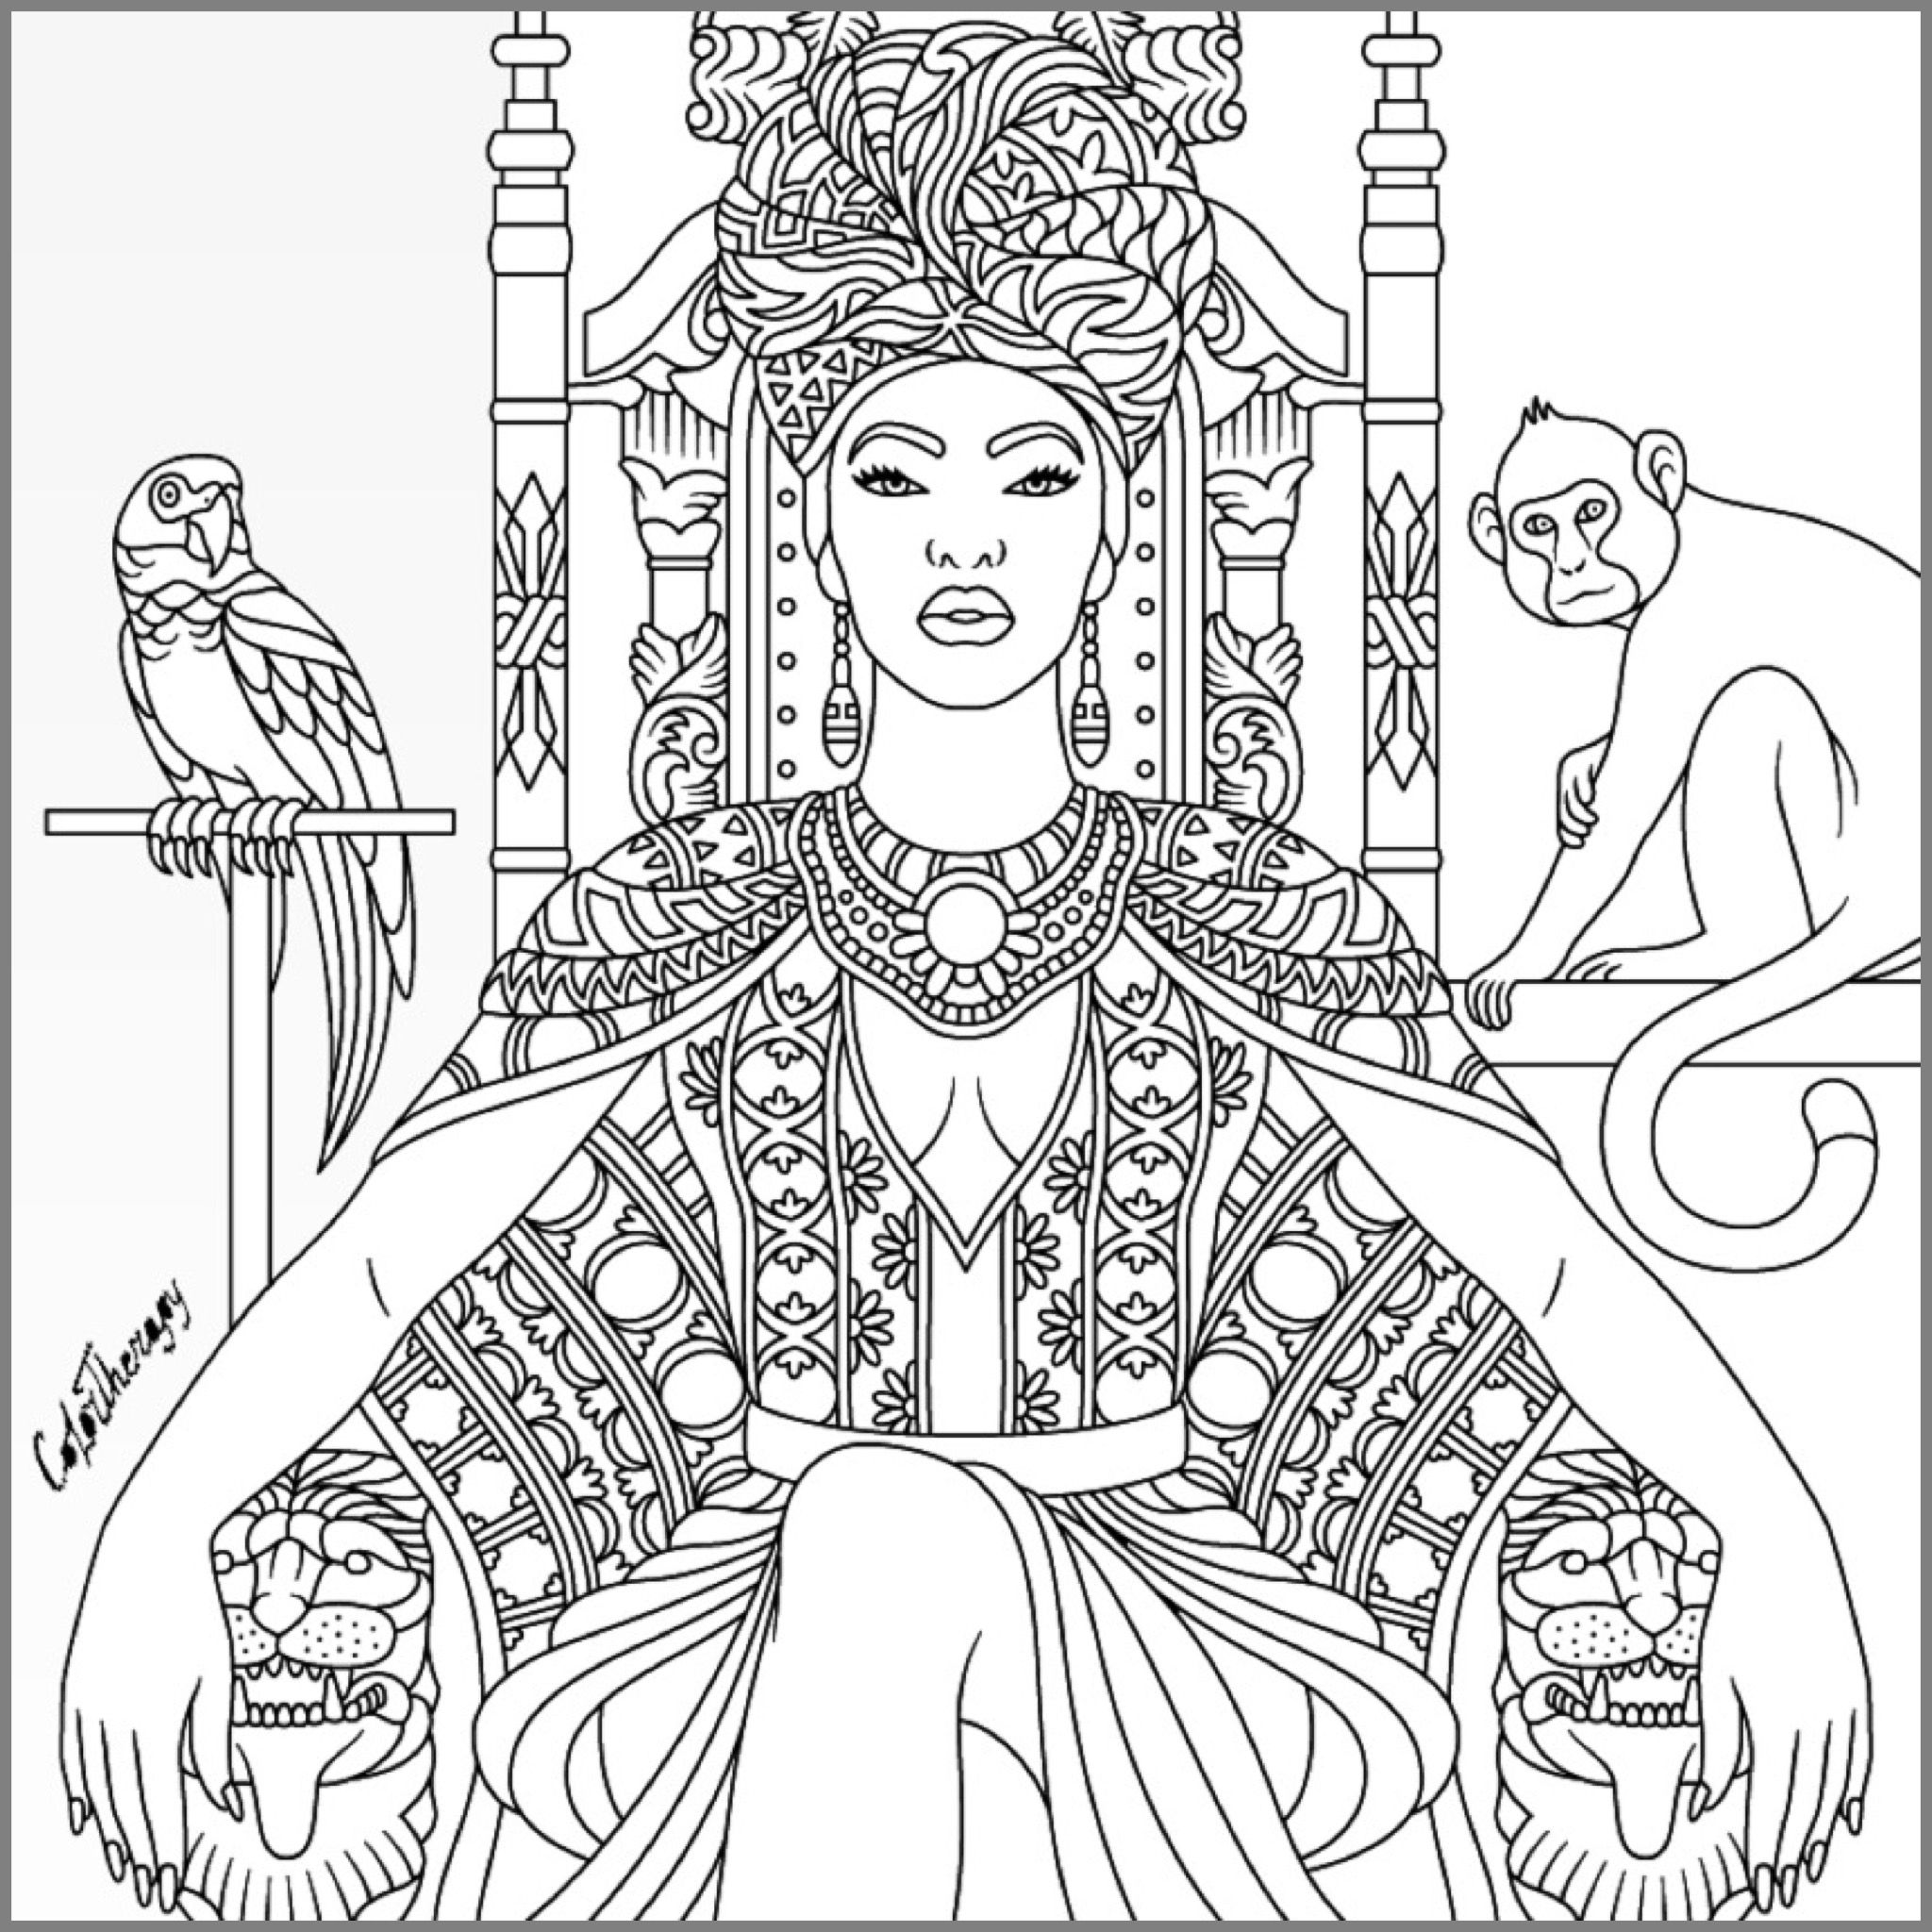 Pin By Val Wilson On Coloring Pages Coloring Books Coloring Pages Free Coloring Pages